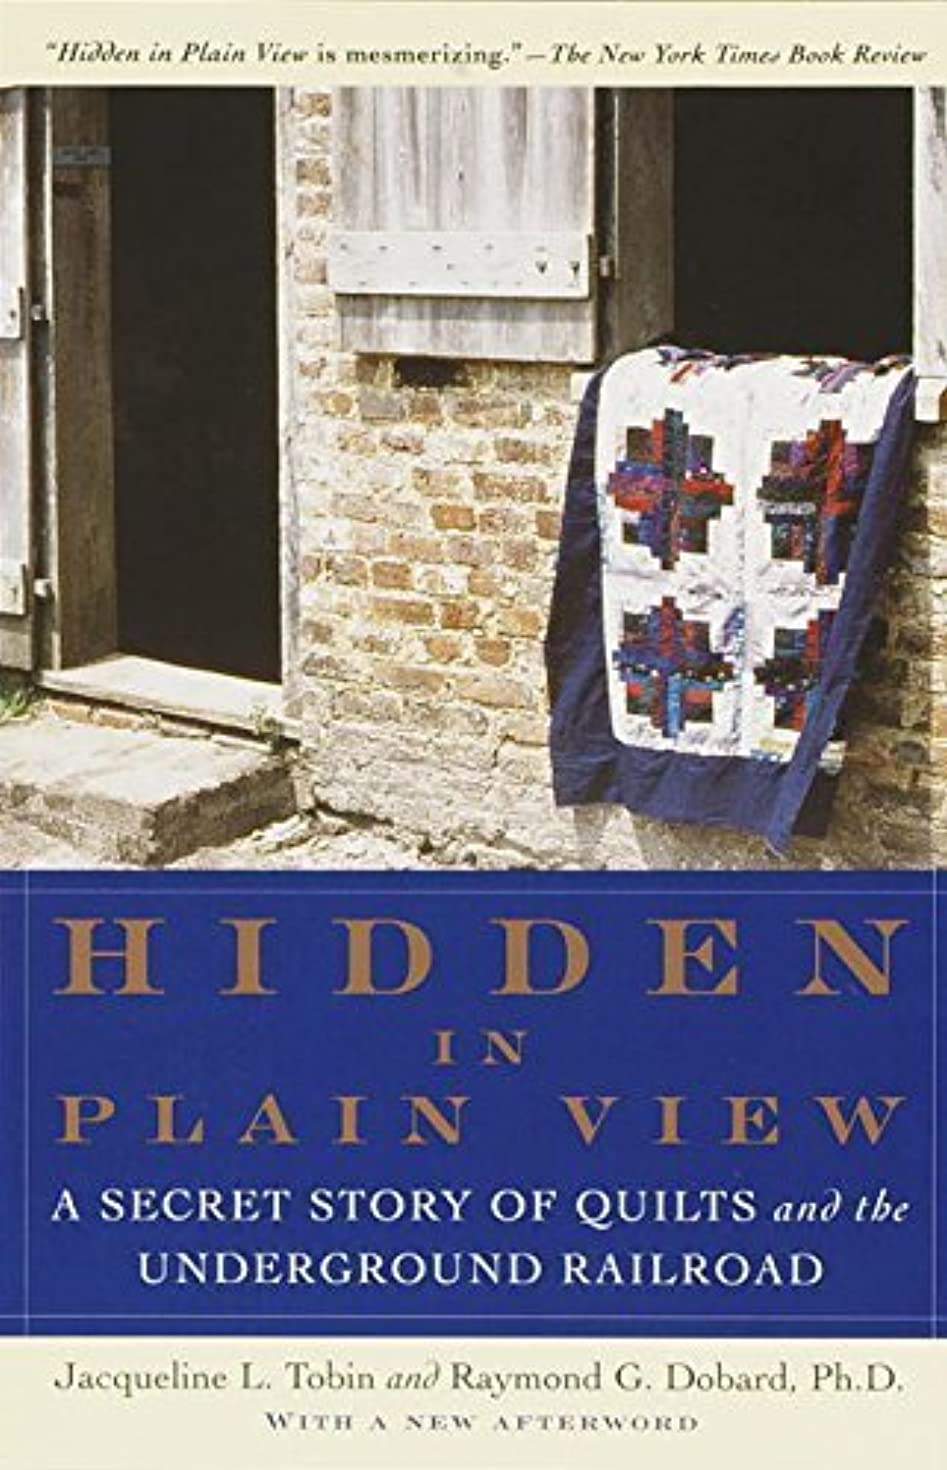 Hidden in Plain View: A Secret Story of Quilts and the Underground Railroad by Jacqueline L. Tobin, Raymond G. Dobard (2000) Paperback